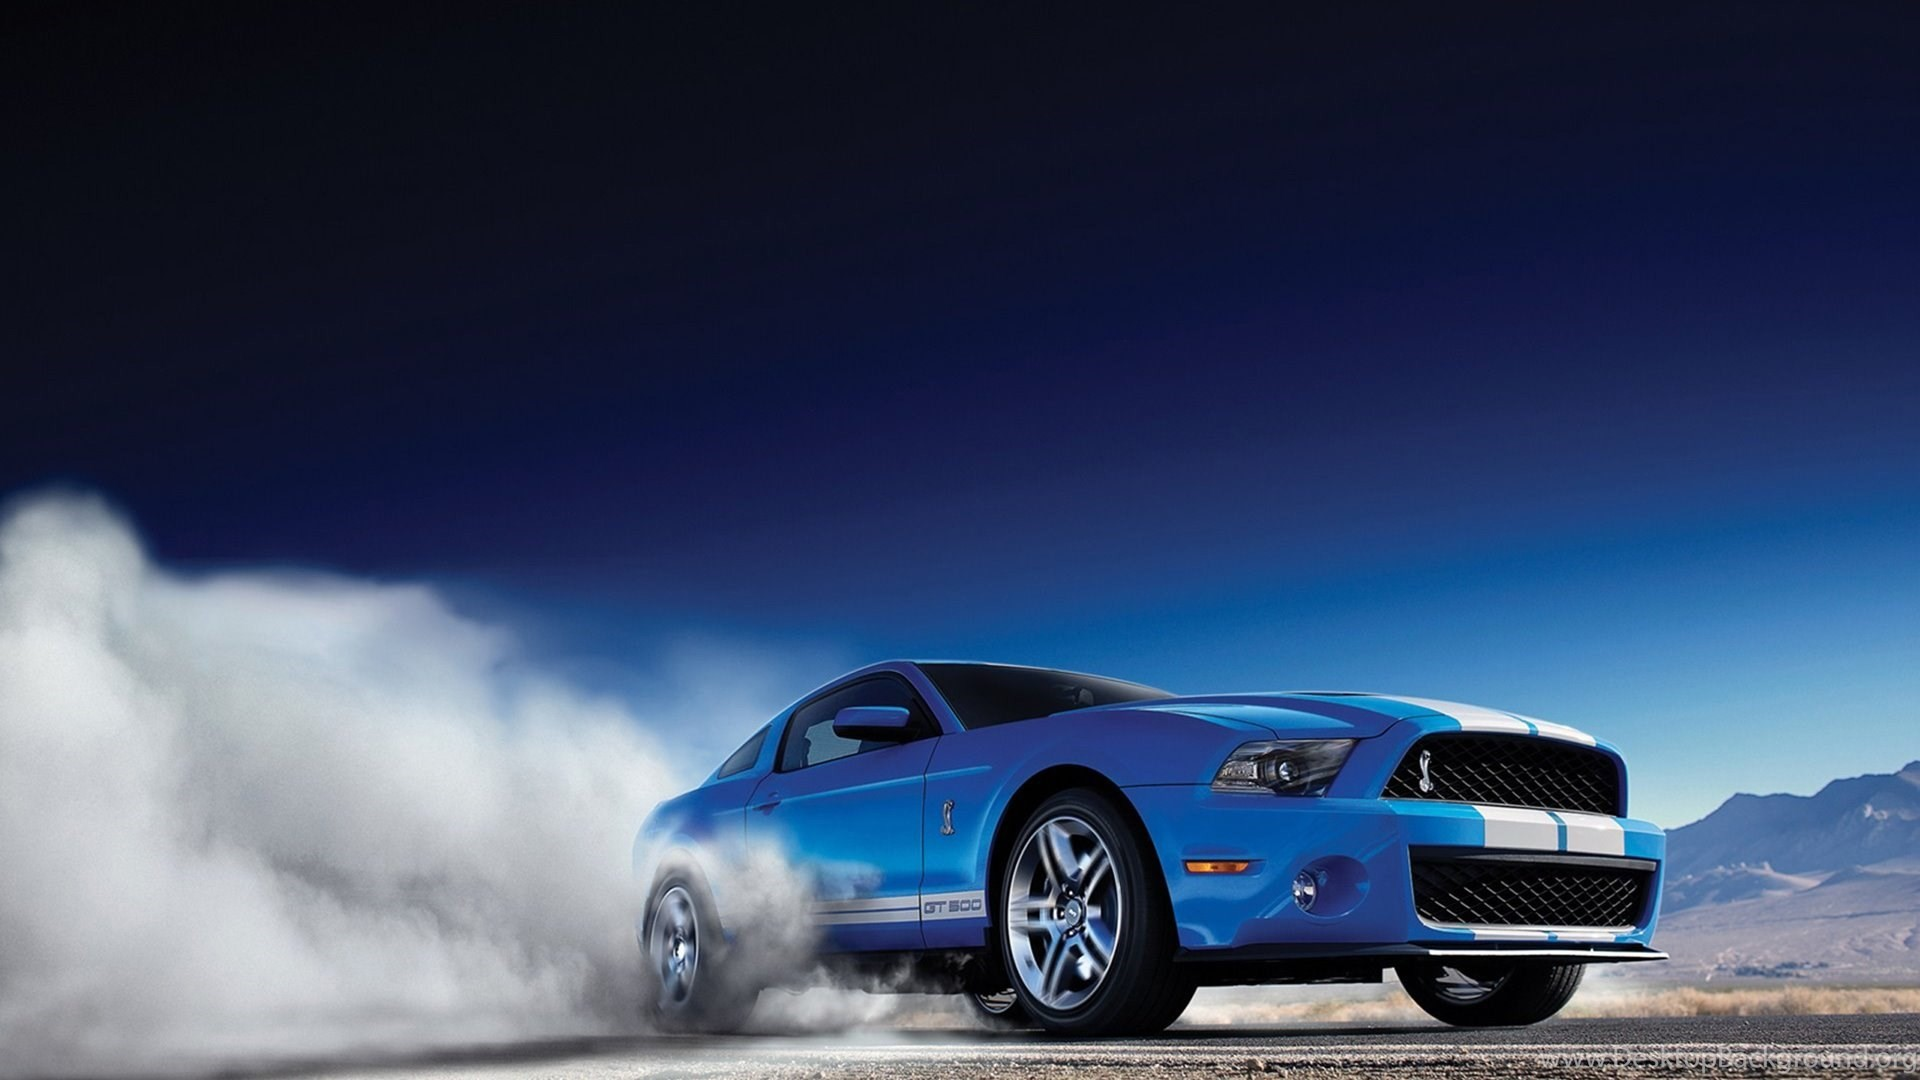 Res: 1920x1080, Ford Mustang GT500 Wallpaper 18 - 1920 X 1080